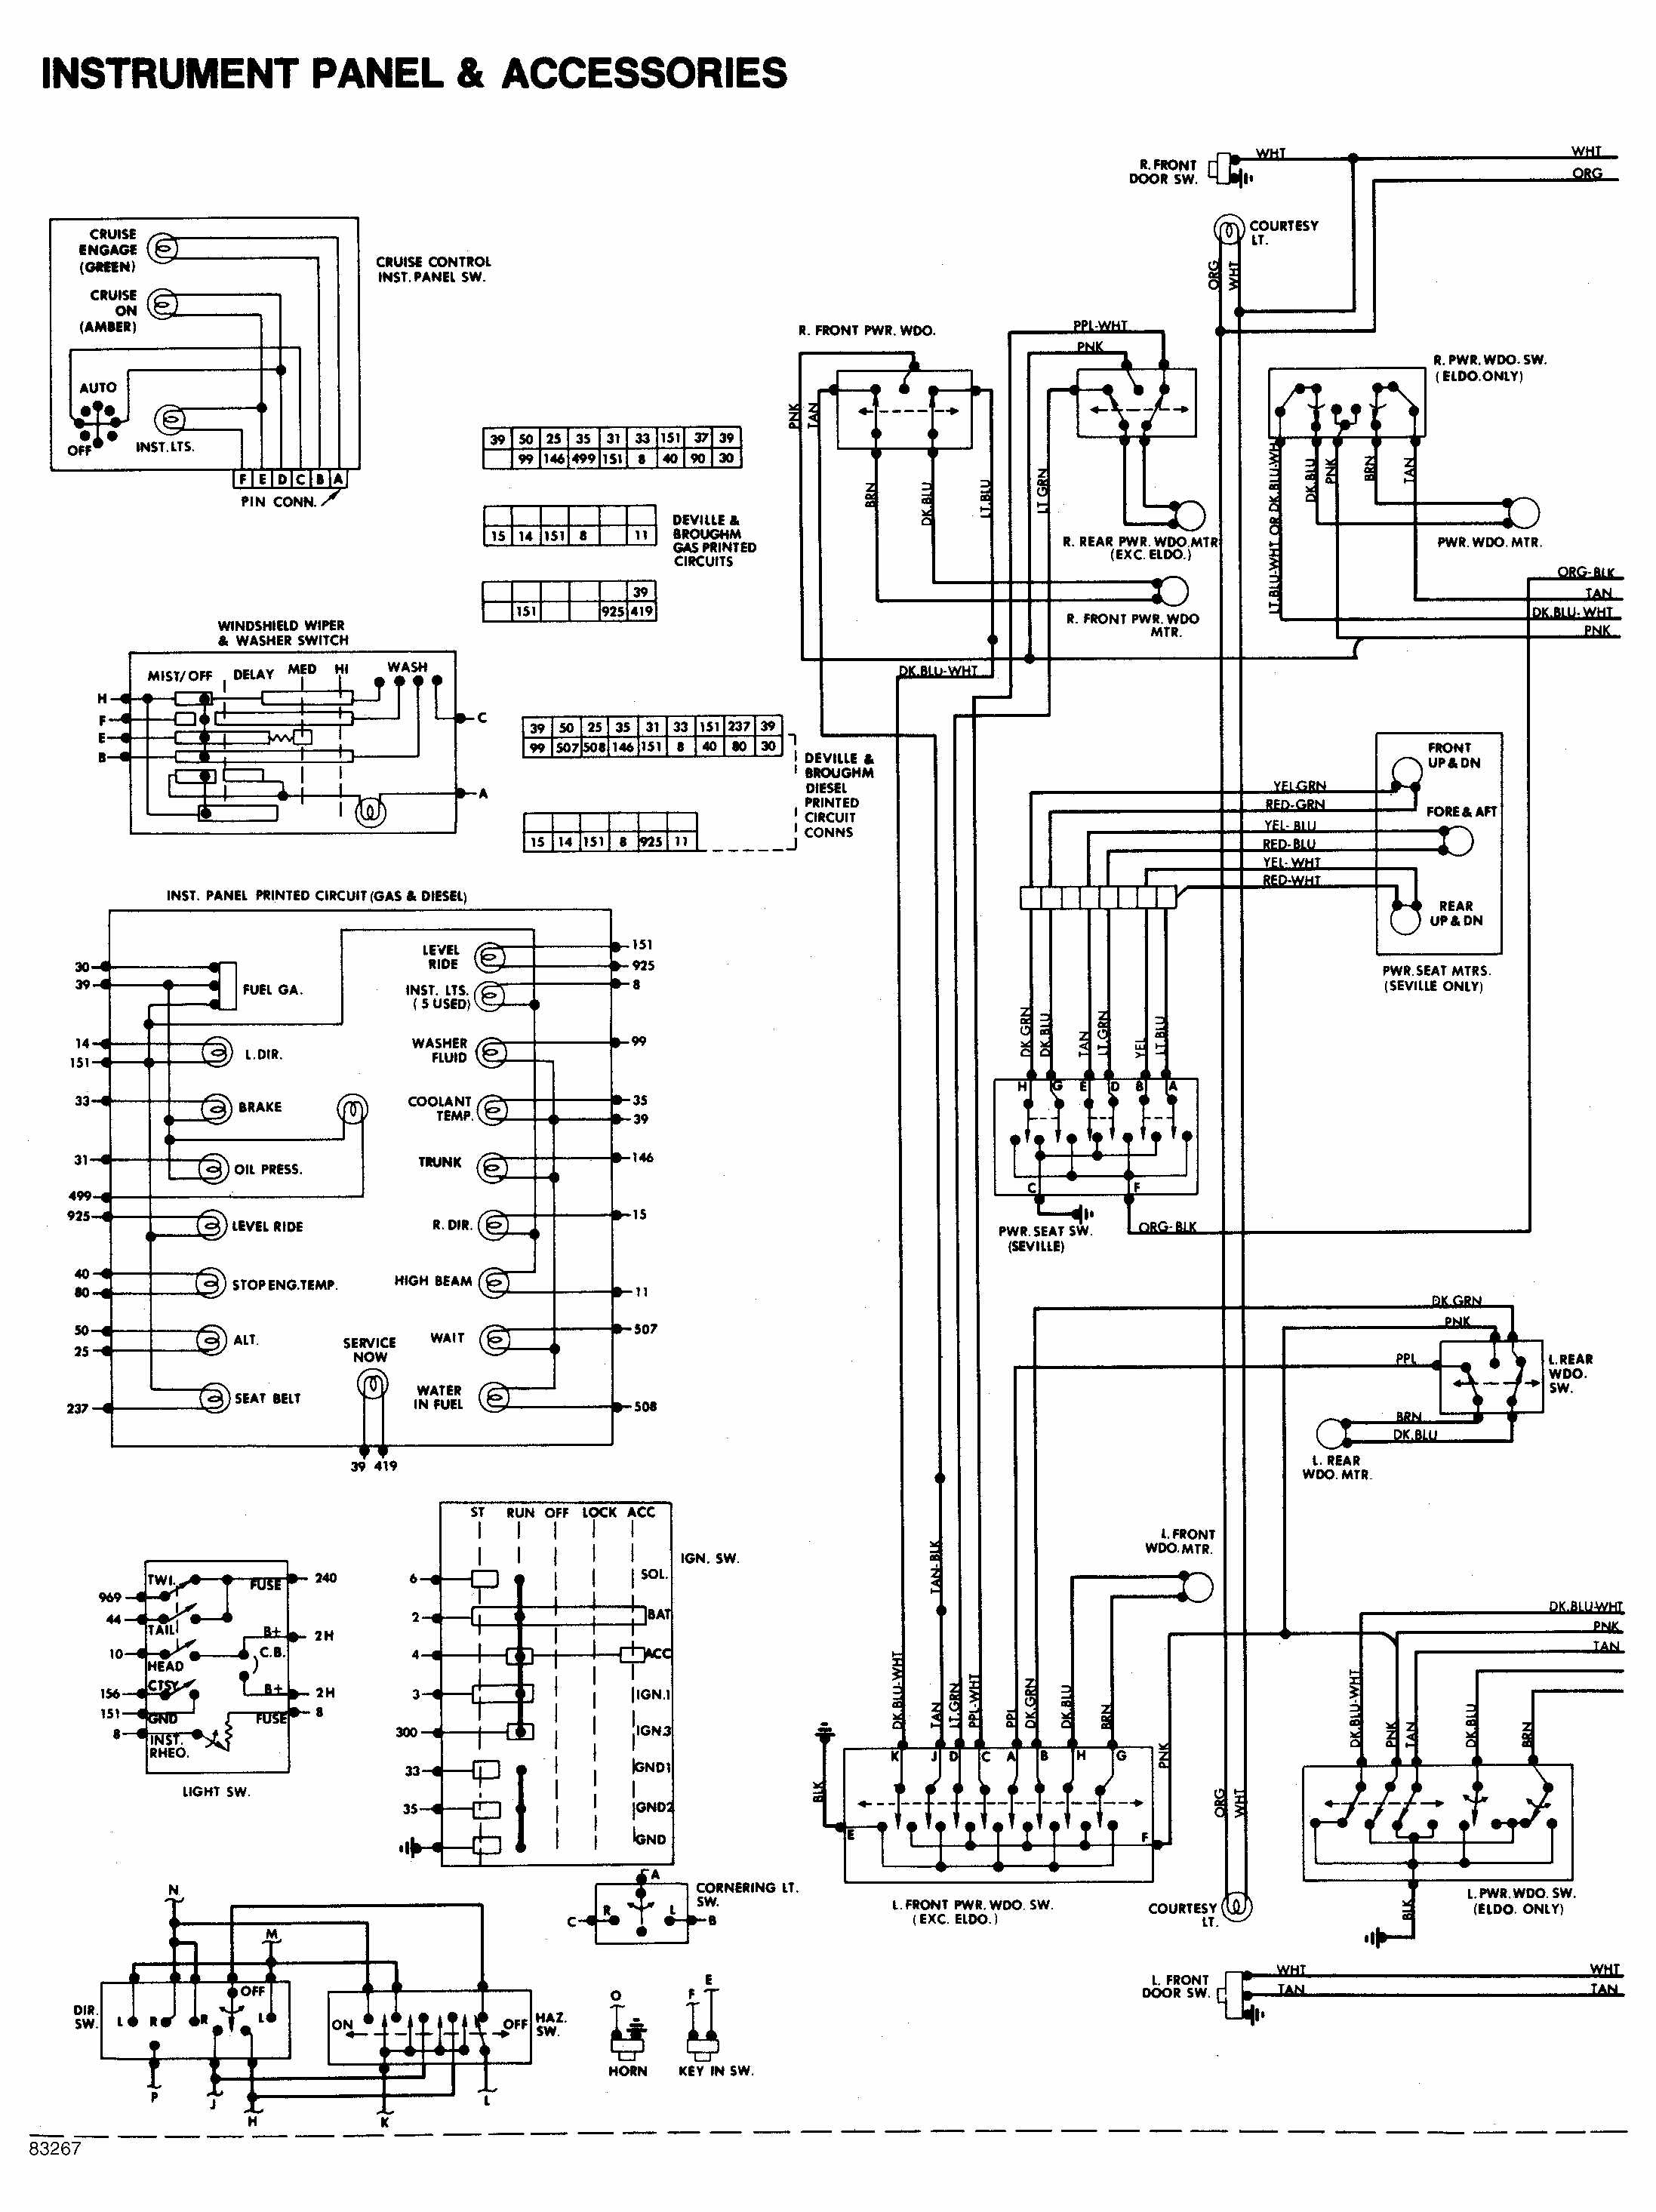 68 Camaro Wiring Schematic Library 2002 Monte Carlo Window Diagram Chevy Diagrams 1968 Horn